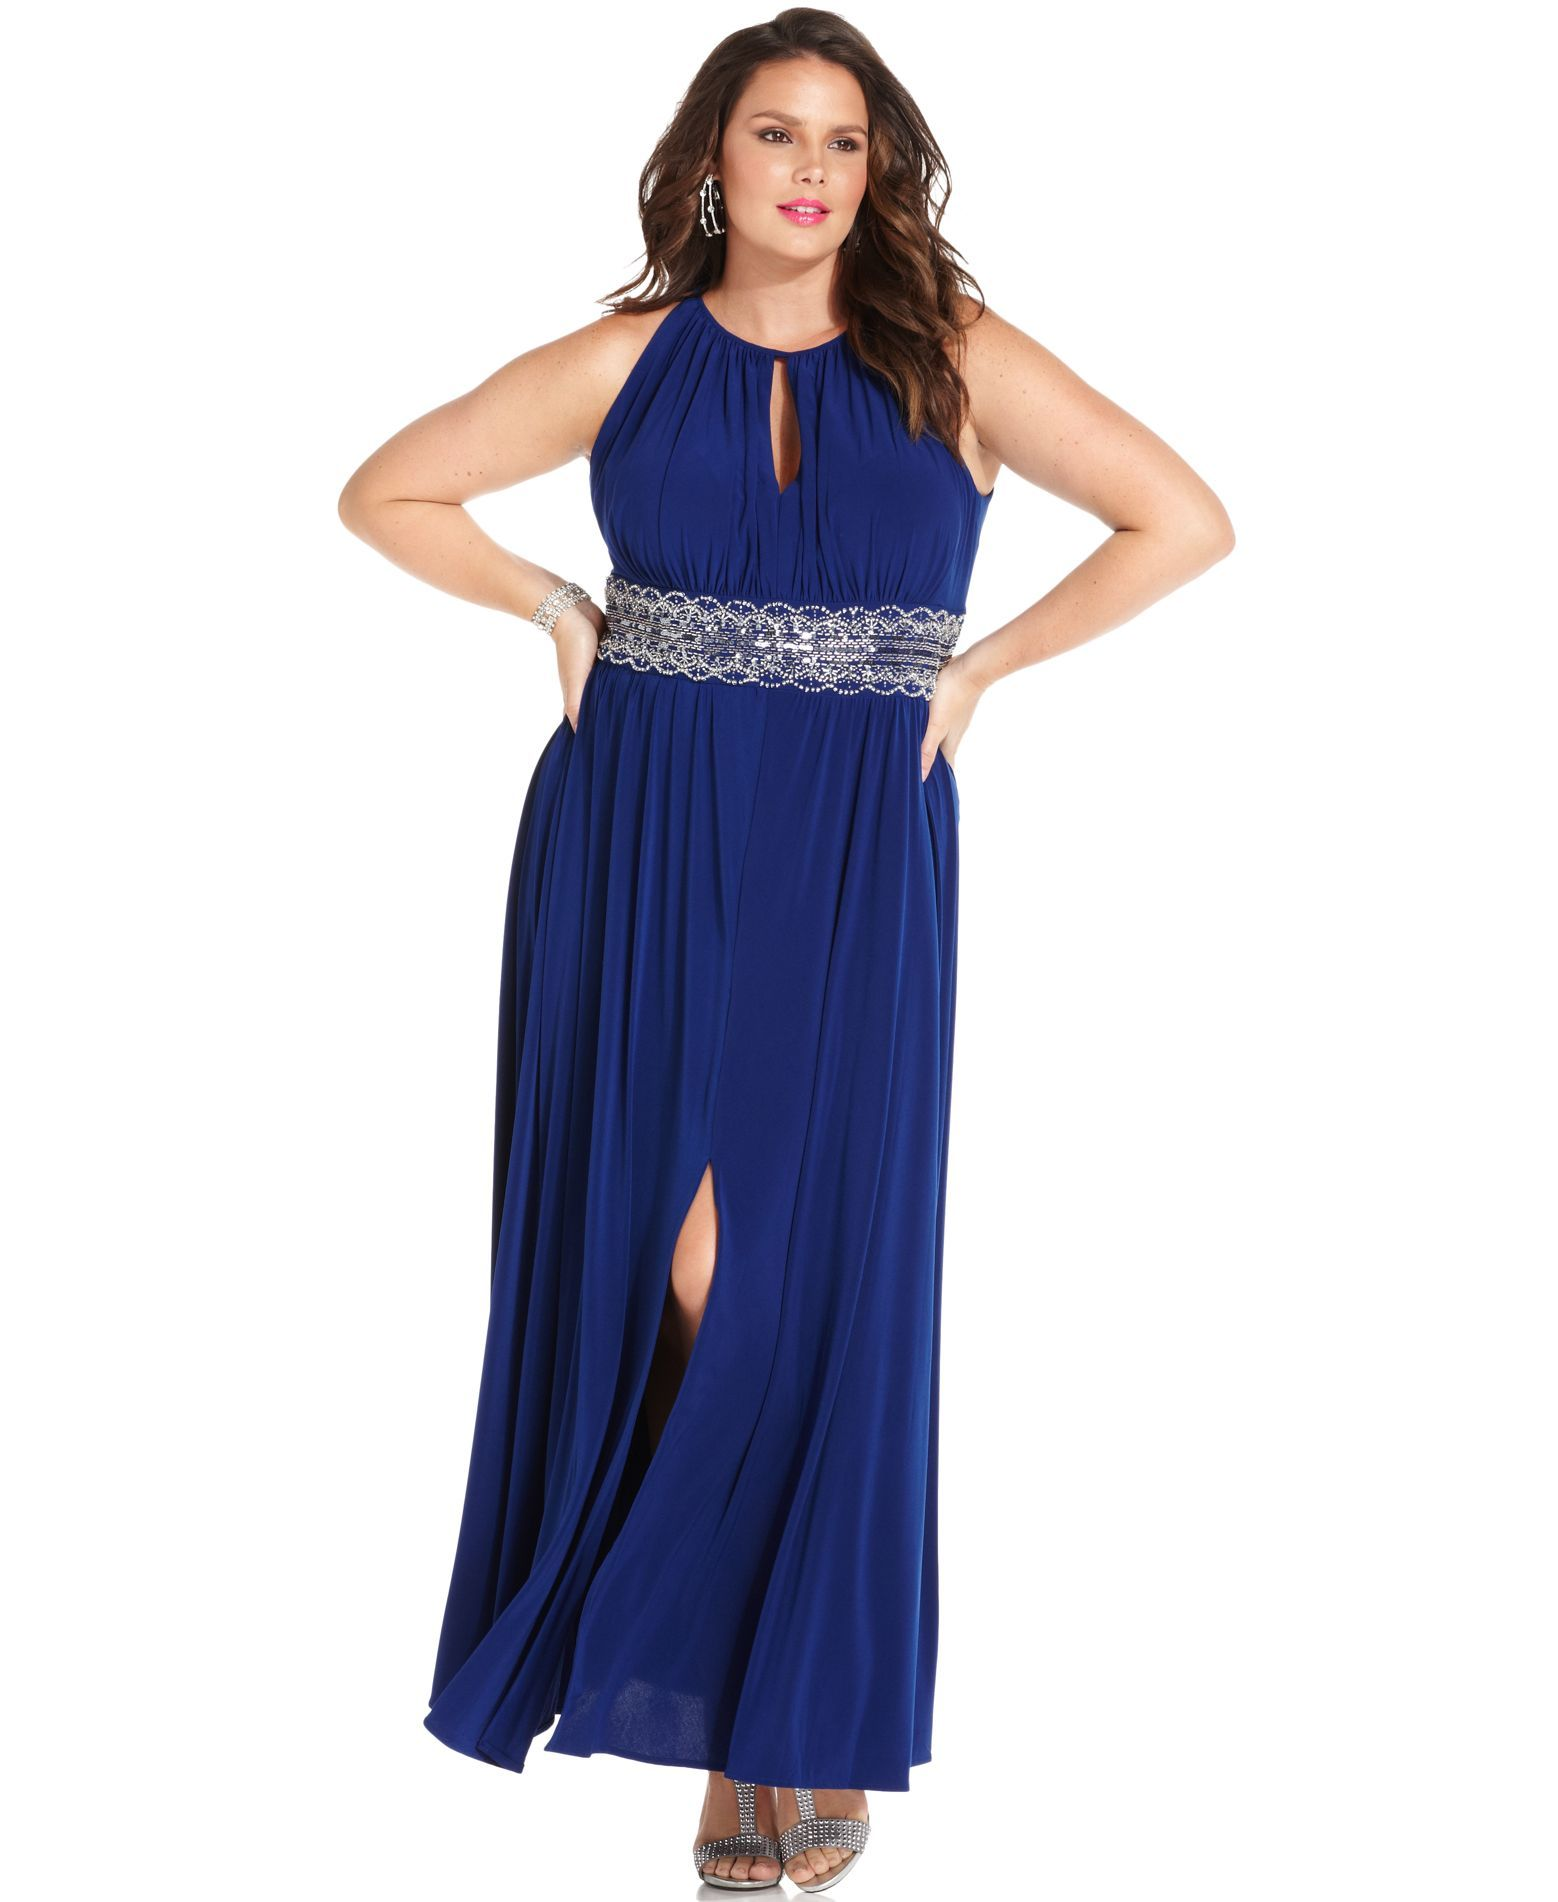 R Richards Plus Size Dress, Sleeveless Beaded Evening Gown ...